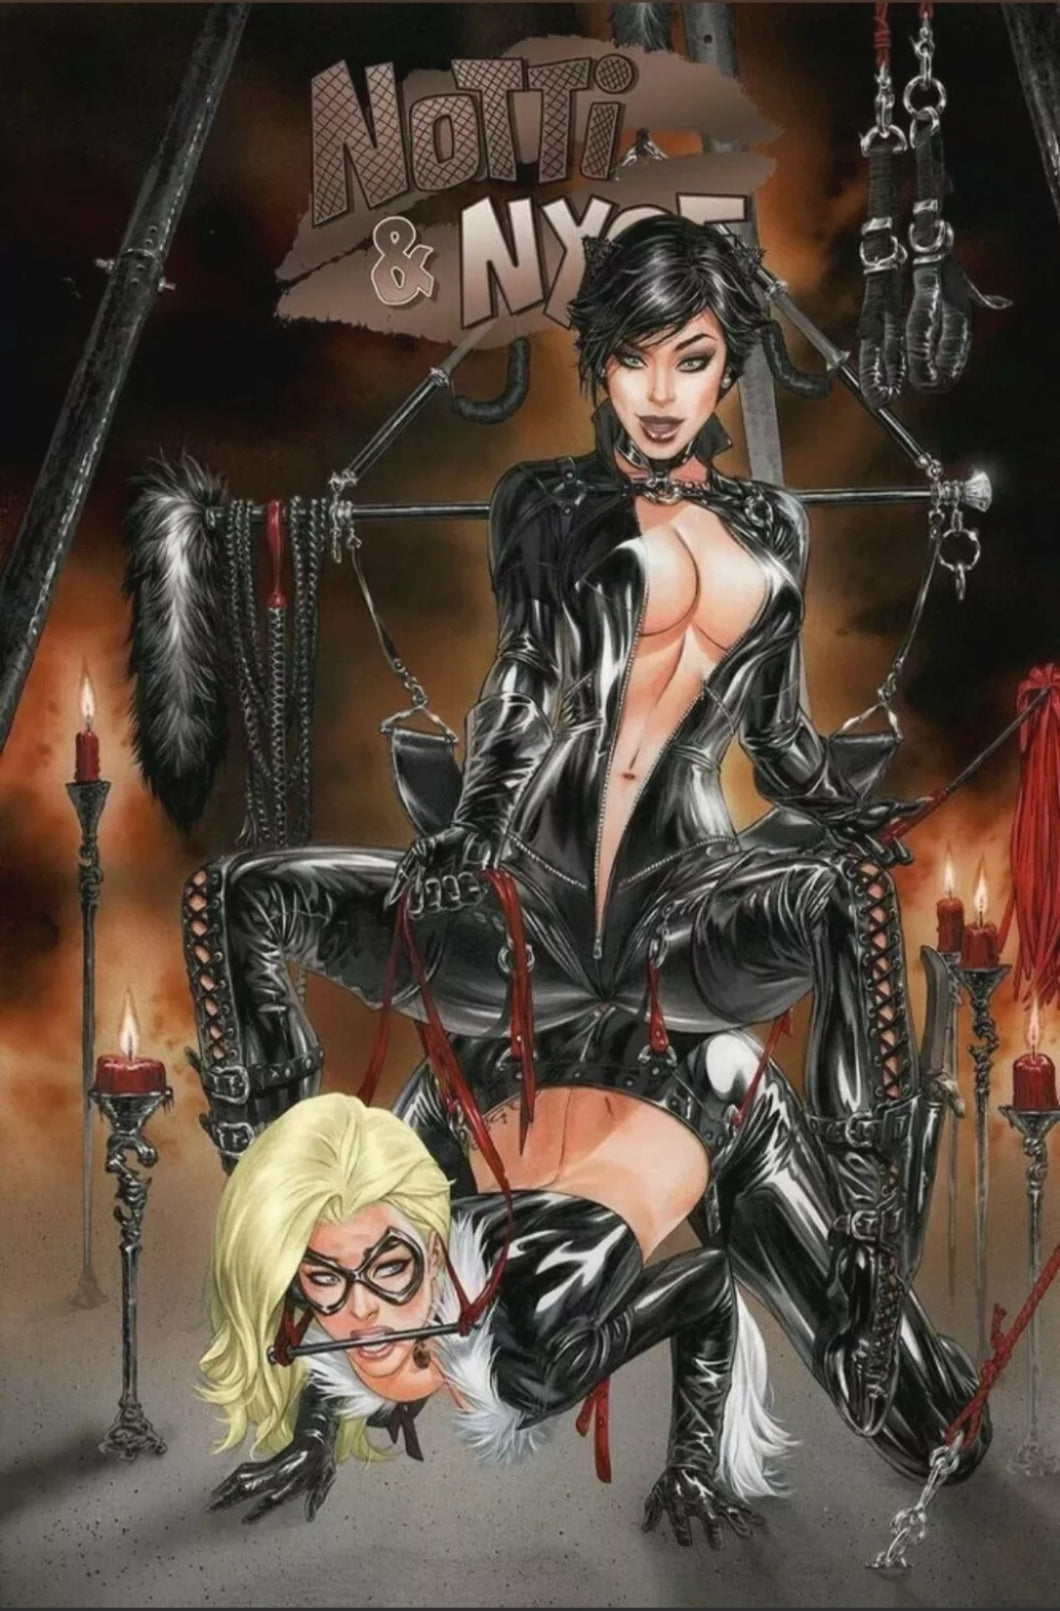 💋 Notti & Nyce - EBAS - Catfight  - Ltd To 500 - Trade Dress Catwoman, Black Cat